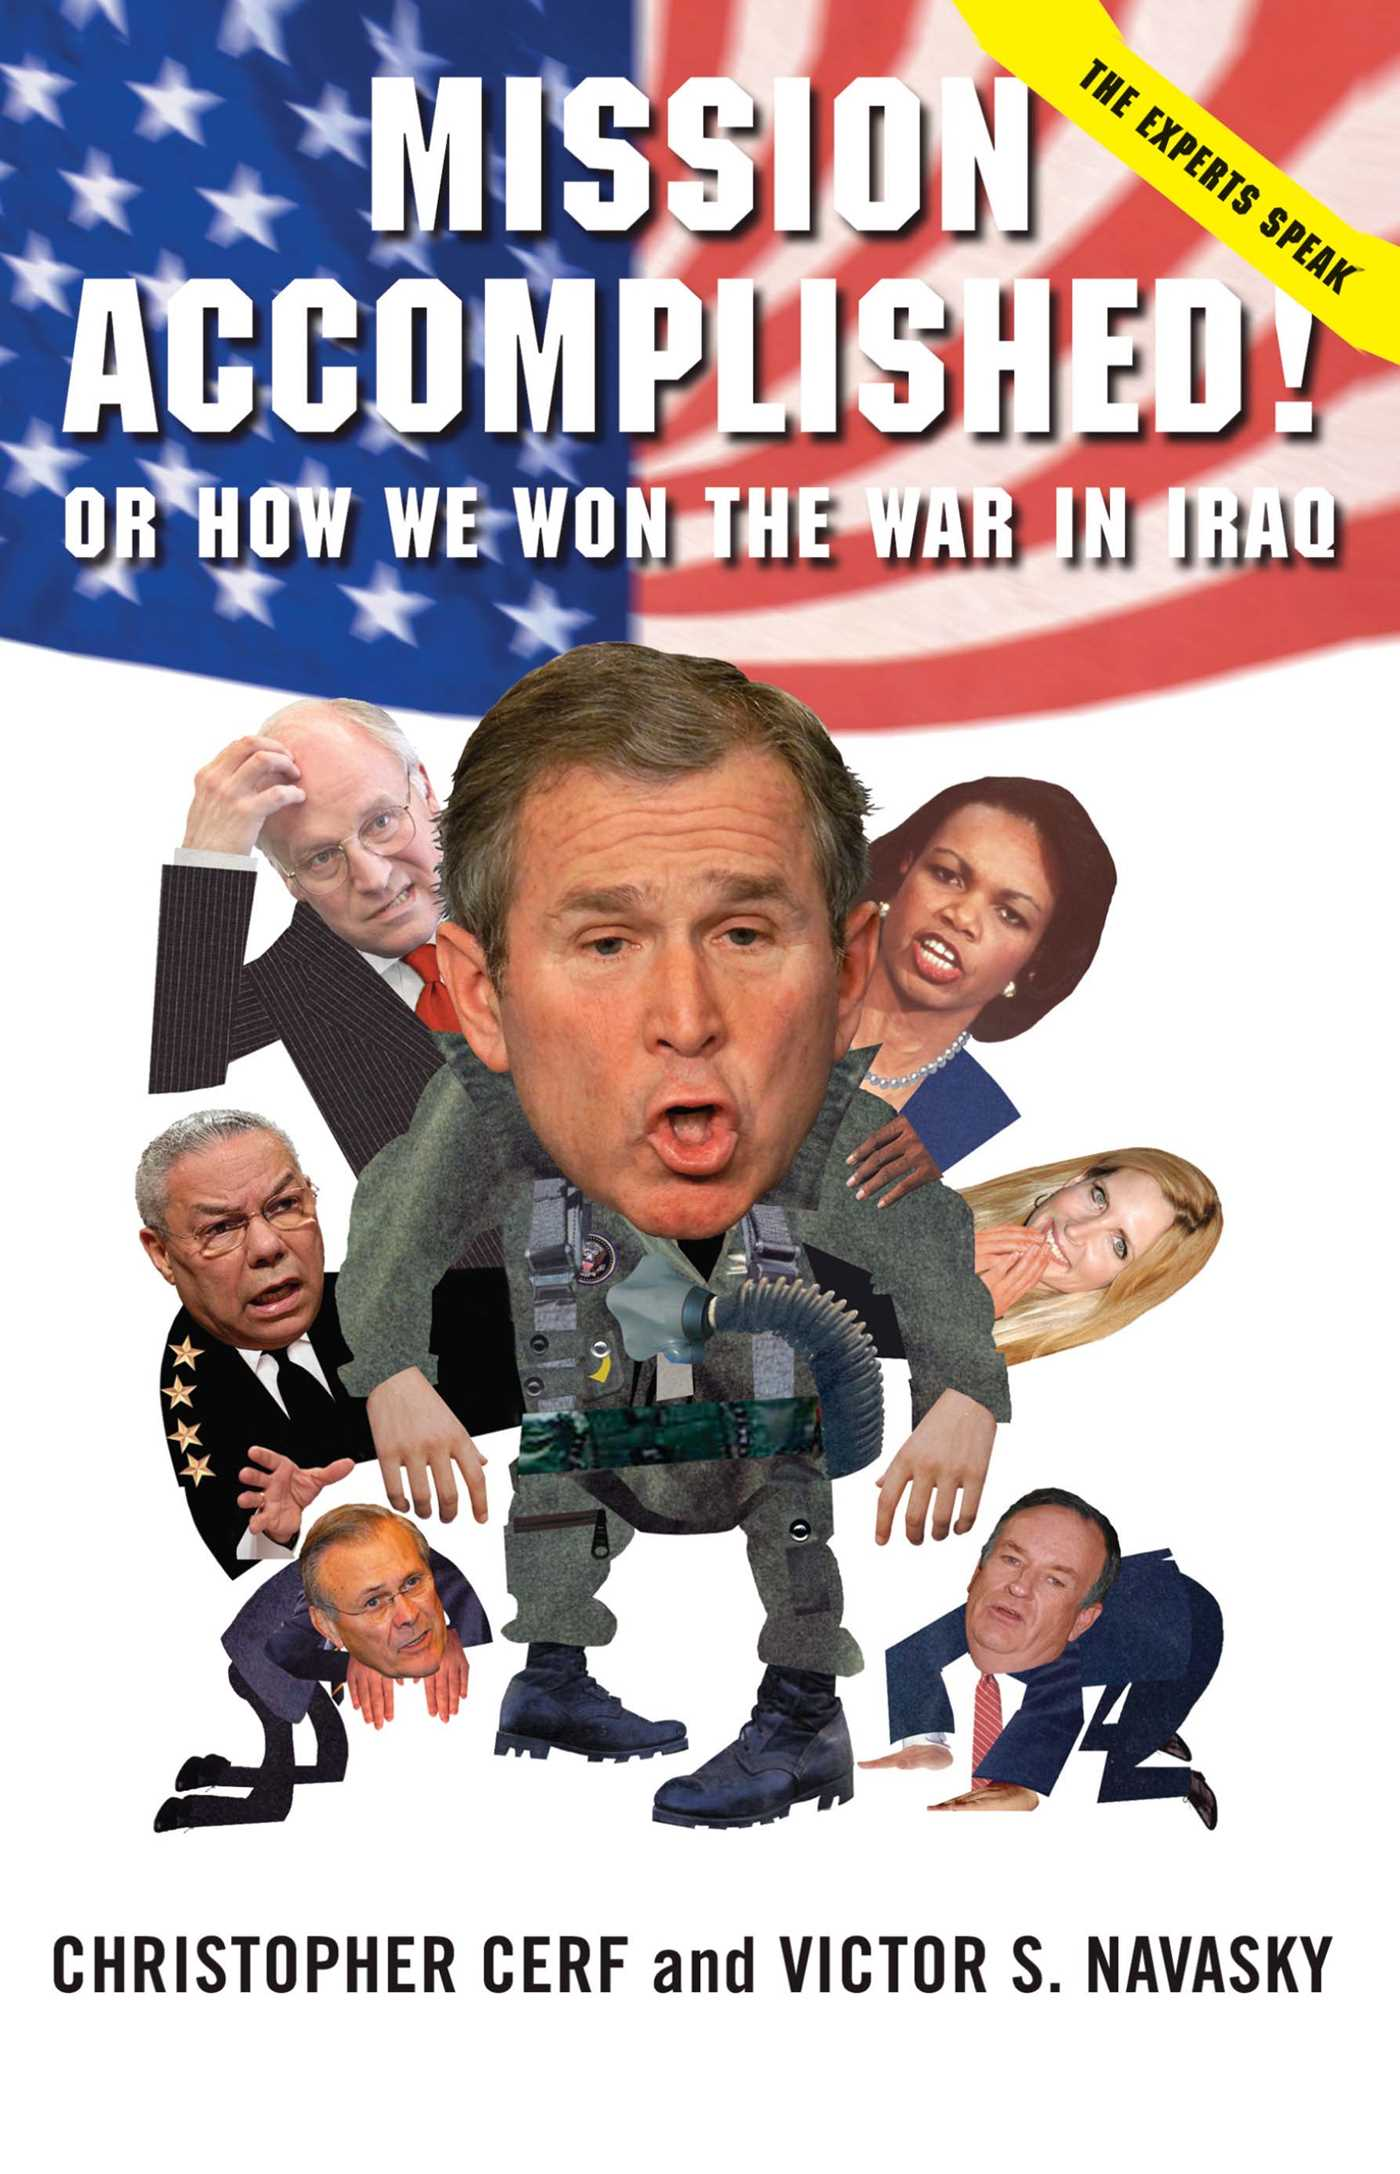 Mission-accomplished-or-how-we-won-the-war-in-iraq-9781416570257_hr